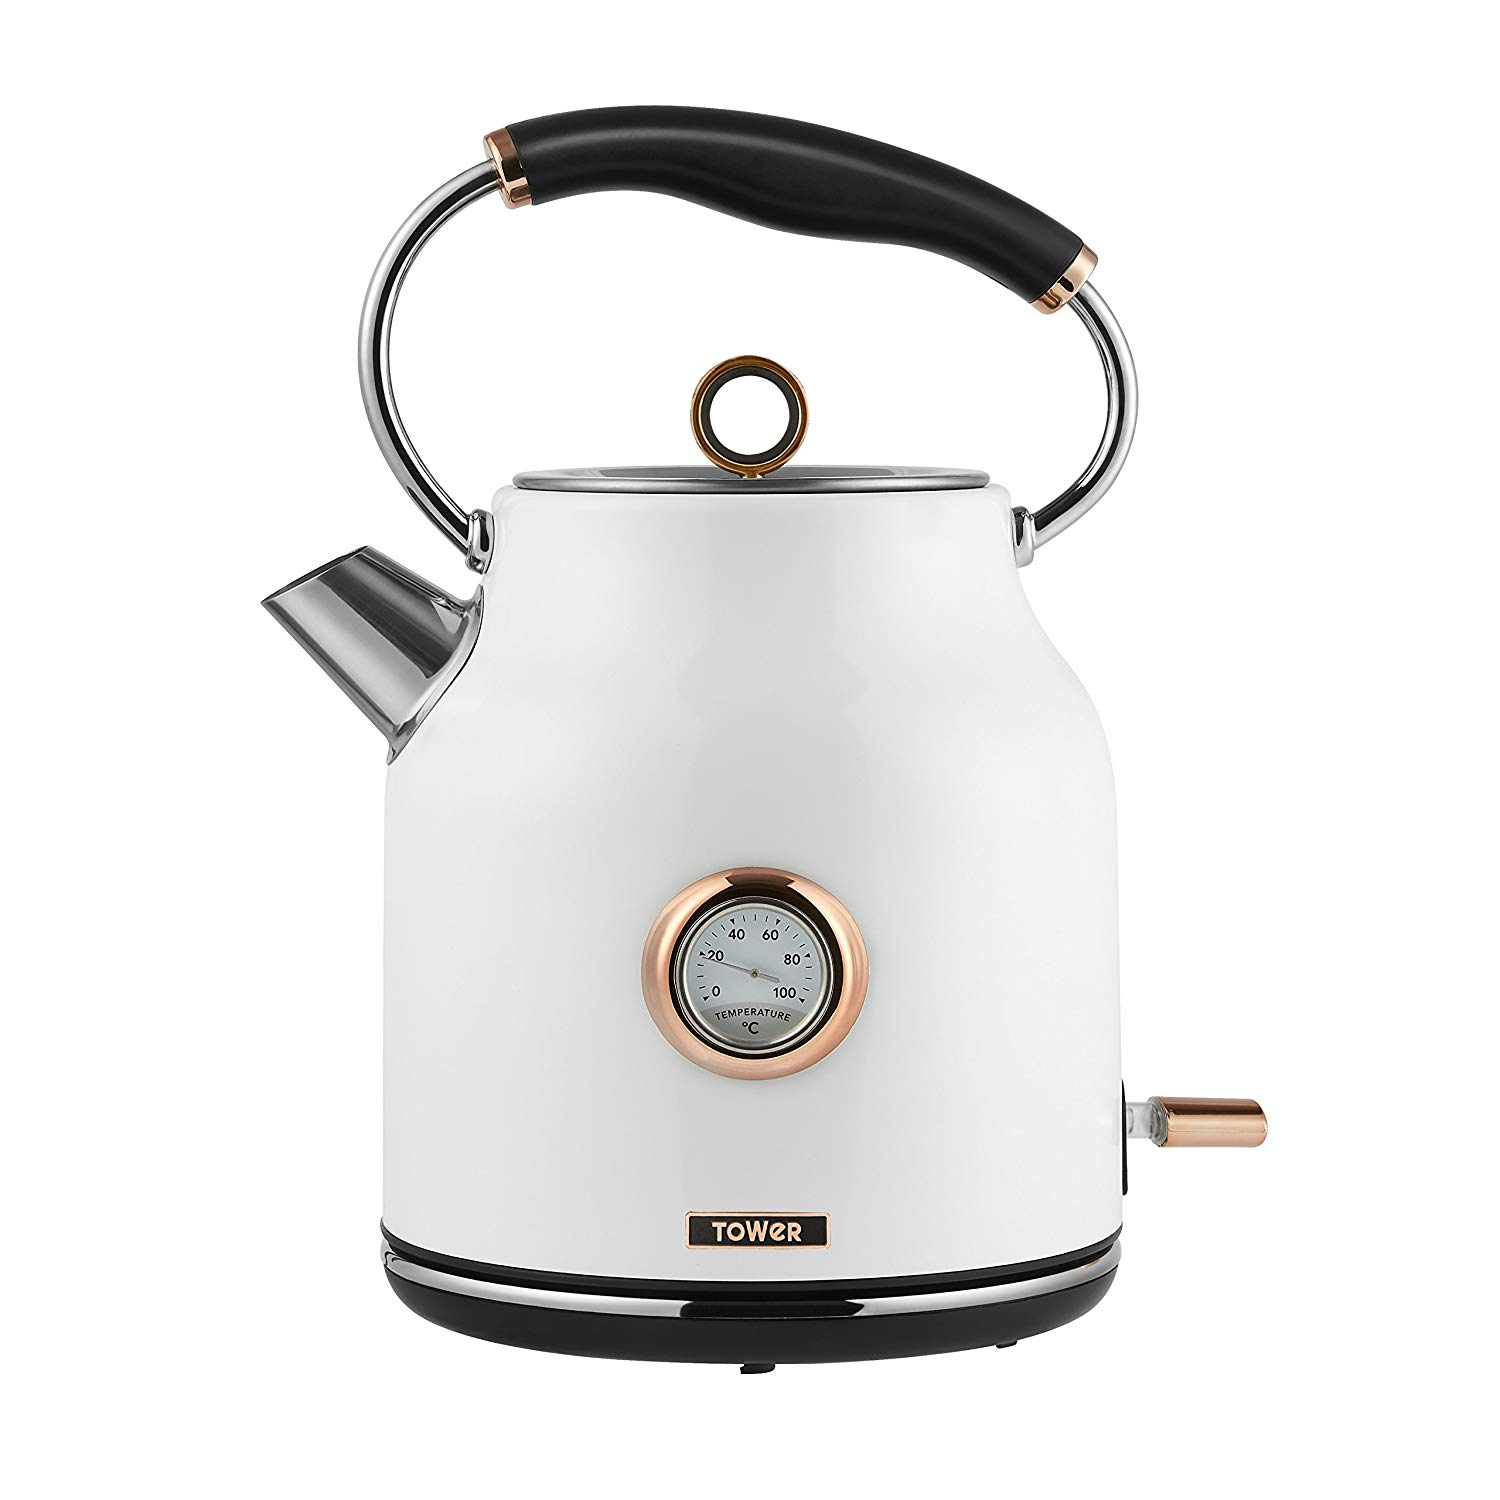 Tower T10020w White & Rose Gold 1.7L Traditional Kettle